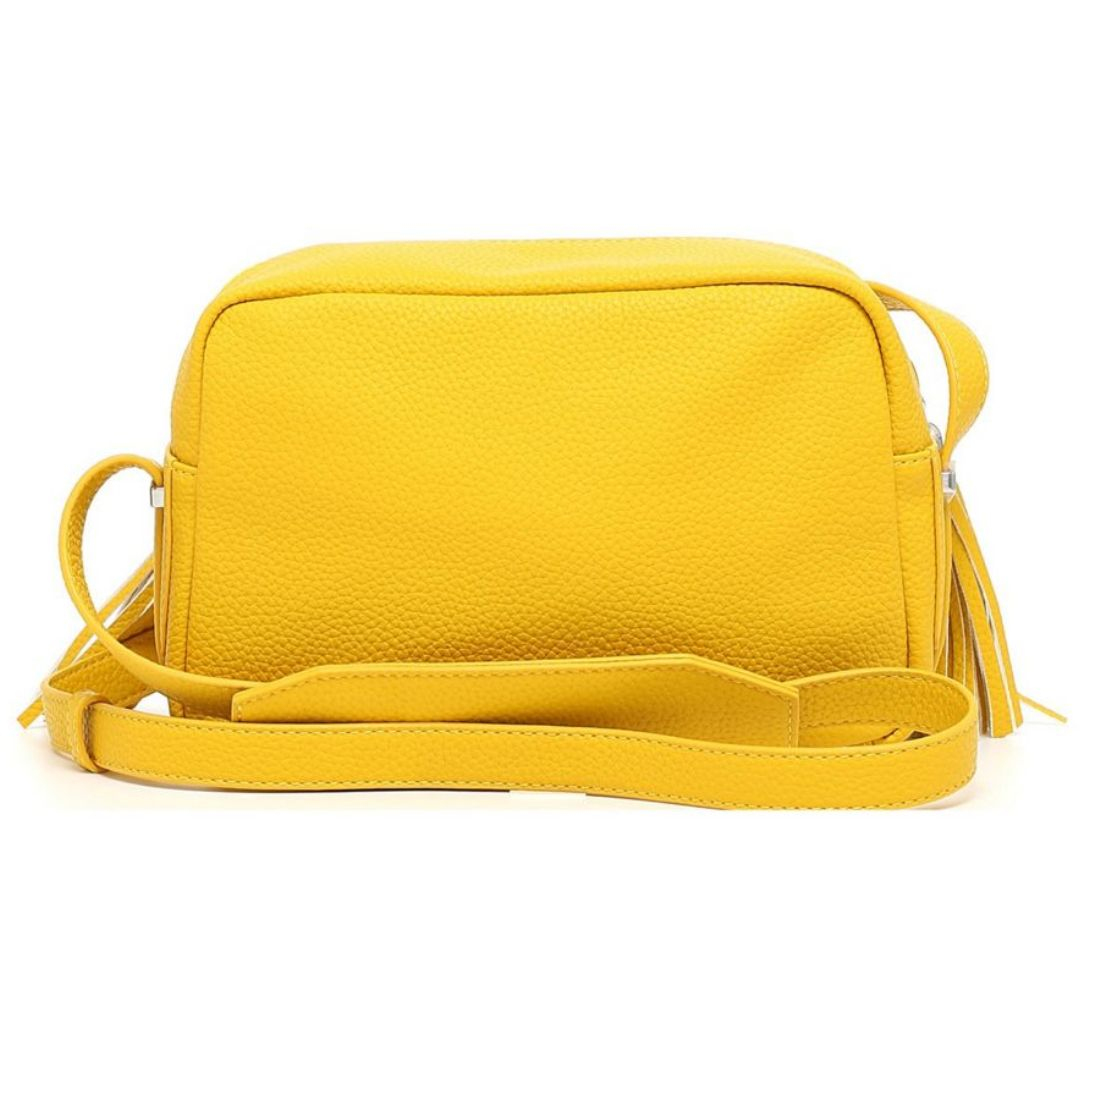 89be168d2a1d8 LIU JO Tracolla EUBEA N16061 Empire Yellow - Bagsabout